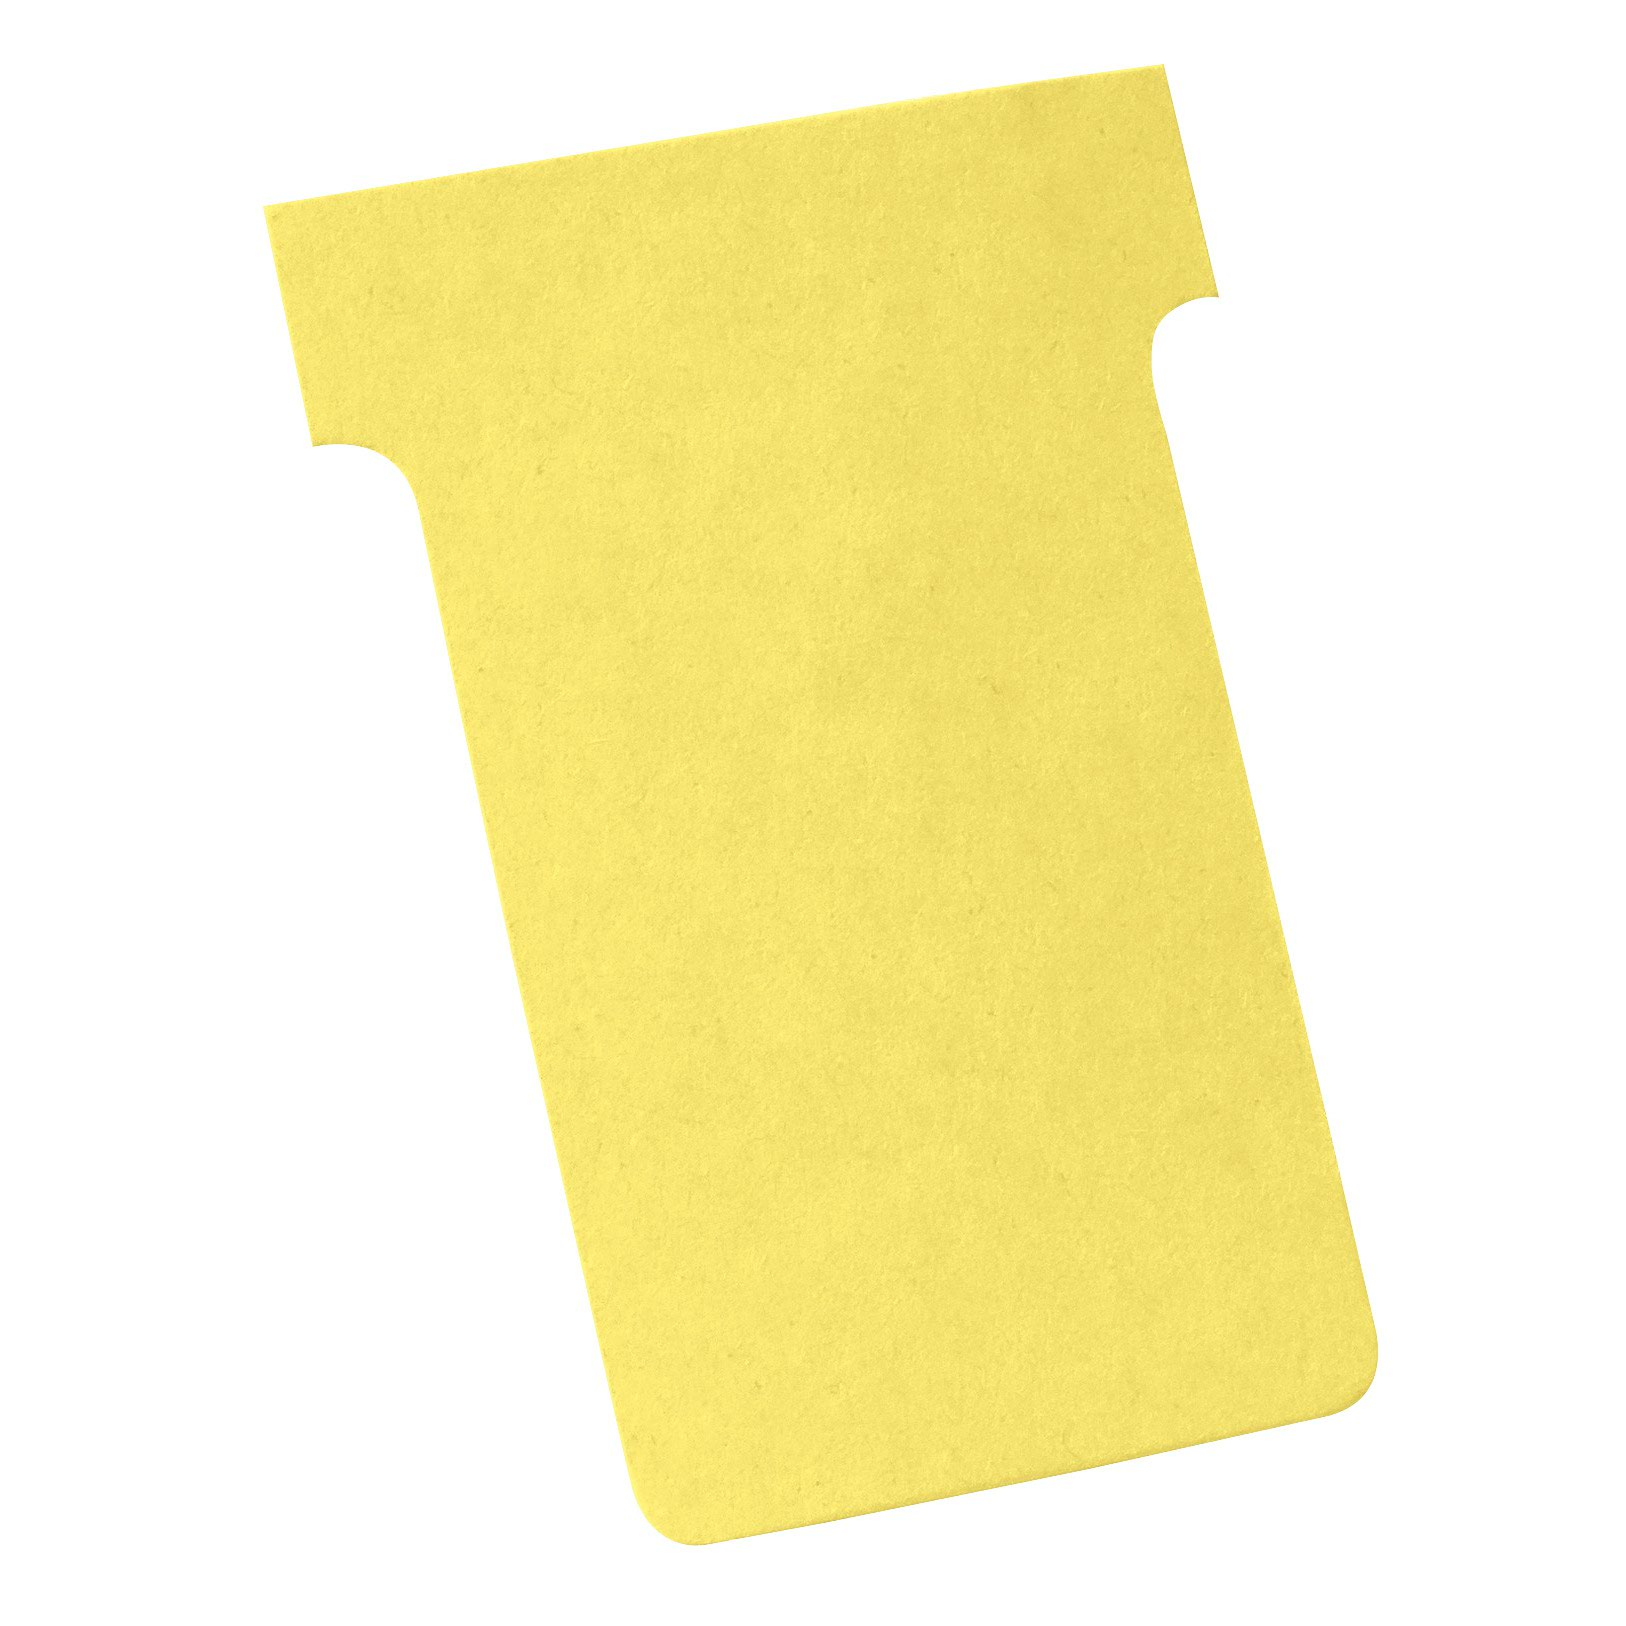 Nobo T-Cards A80 Size 3 Yellow (100) 2003004